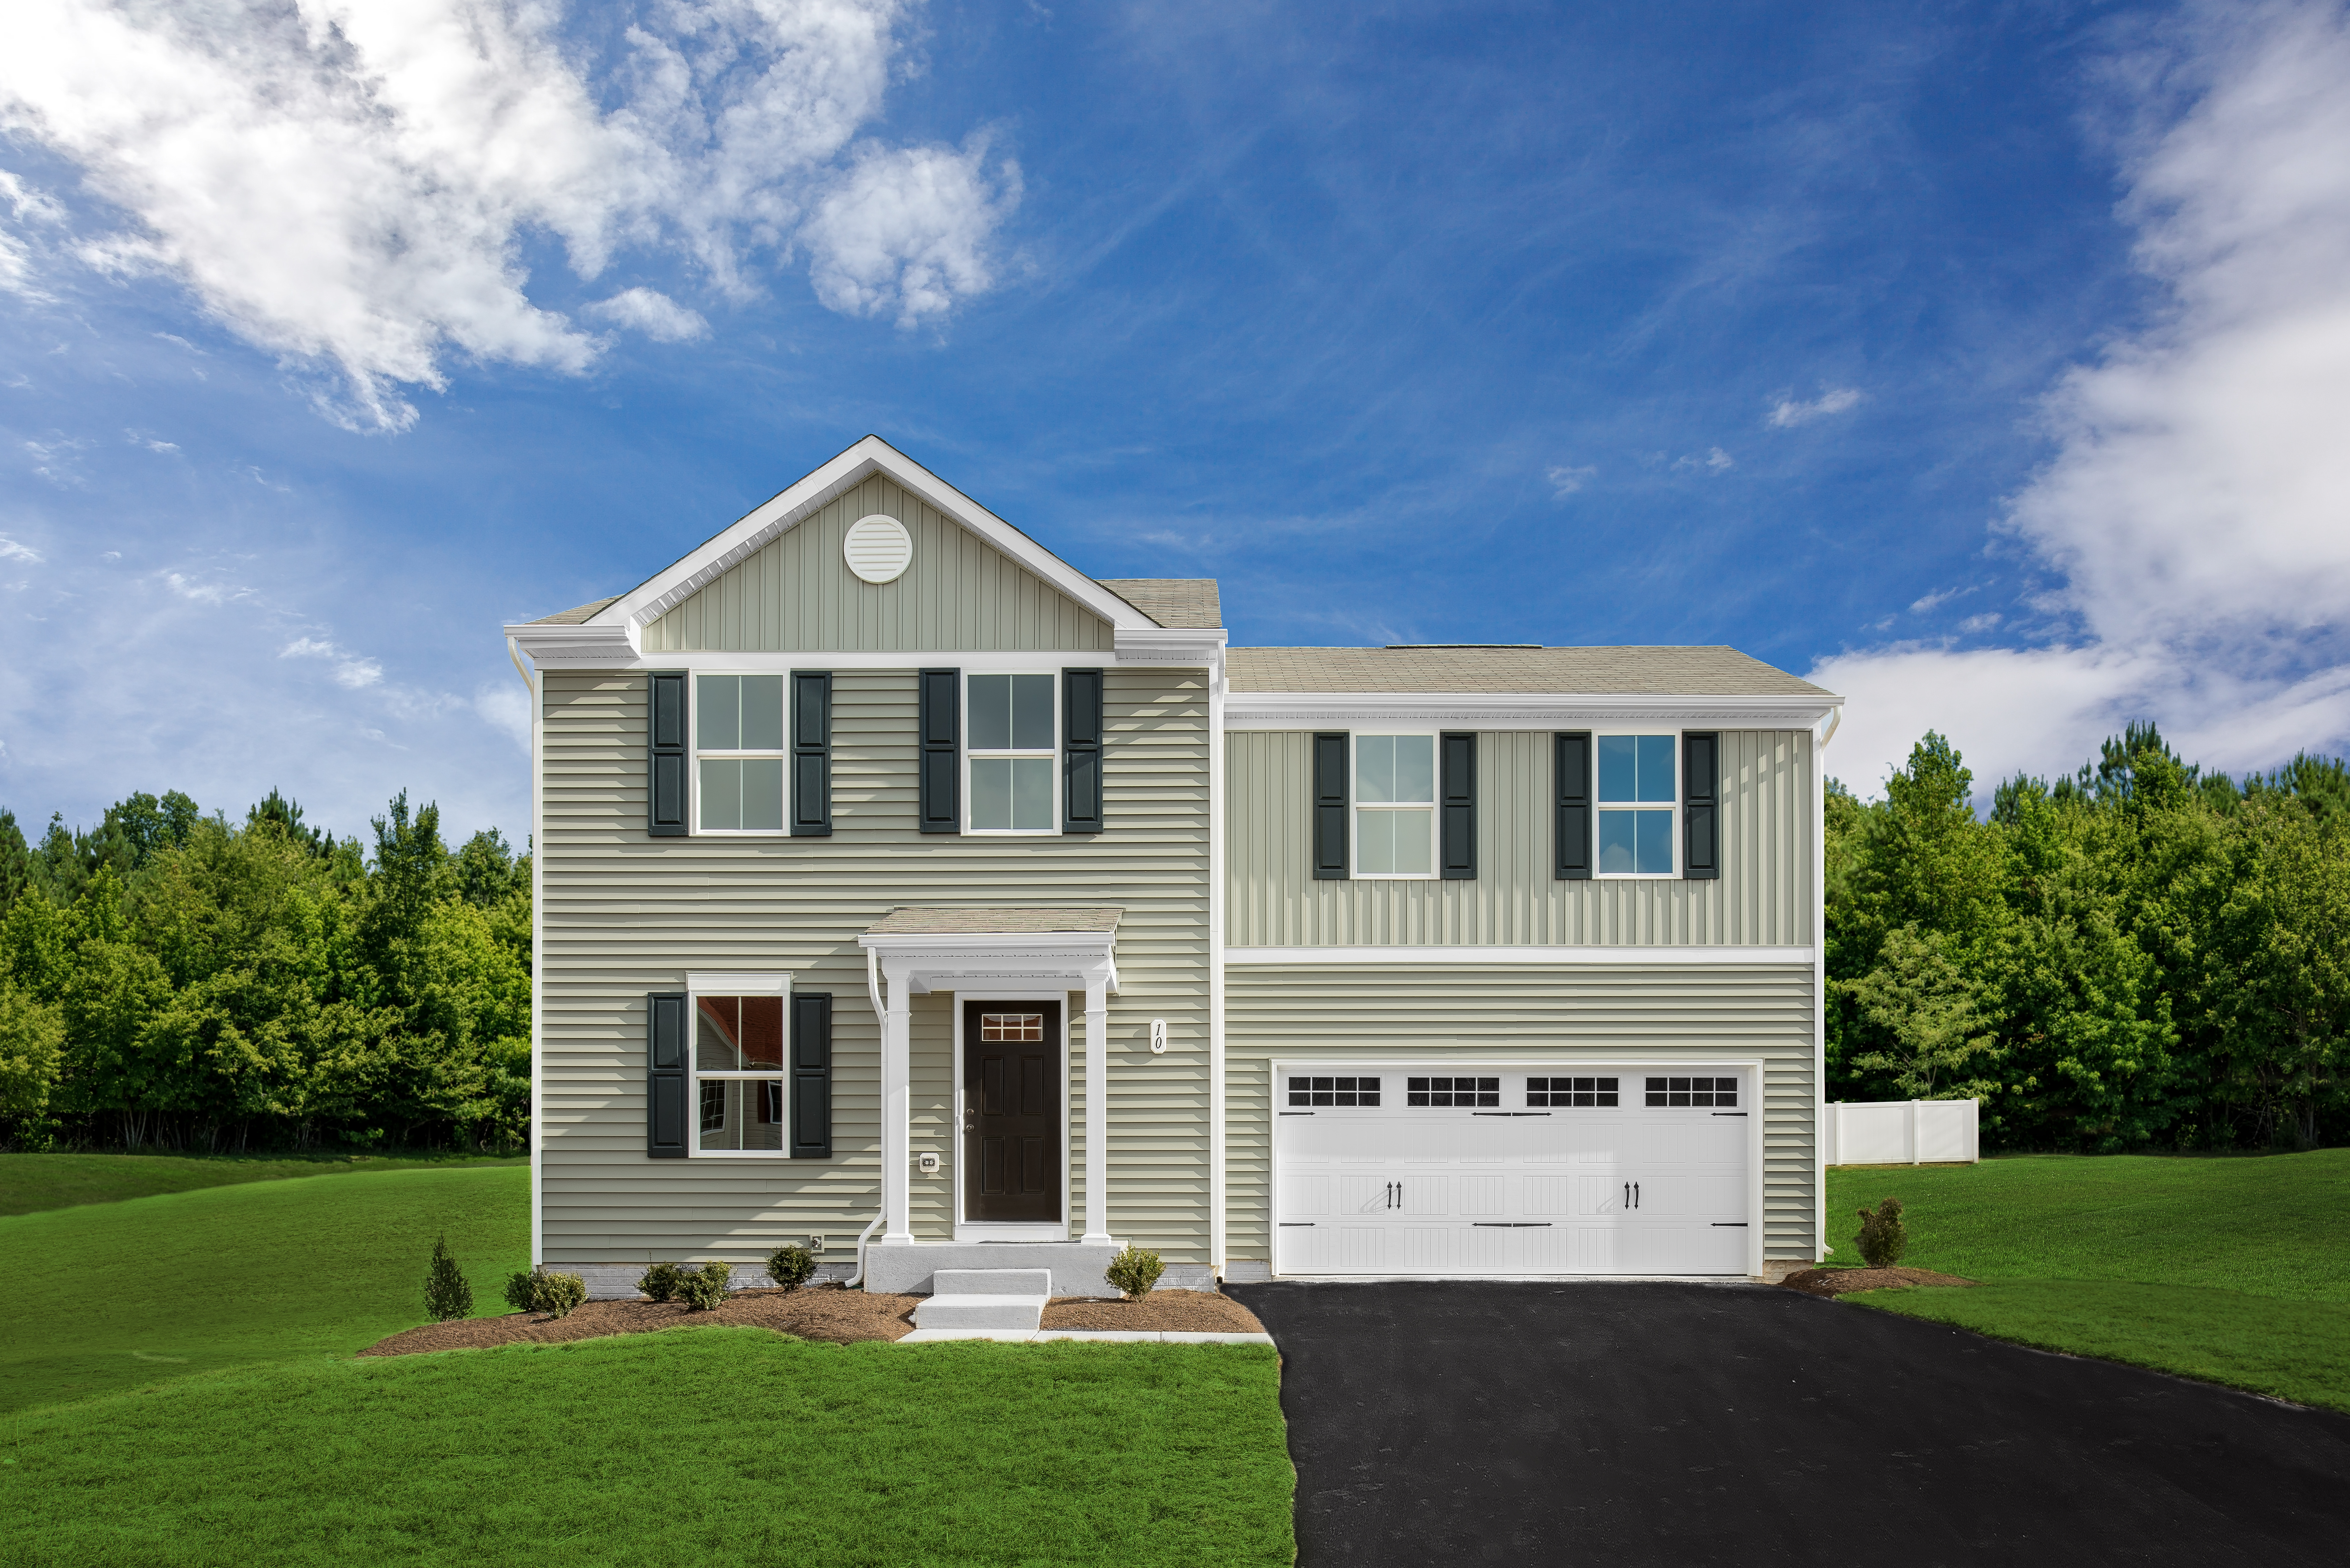 New Homes for sale at Fairfield Estates in Elyria, OH within the ...